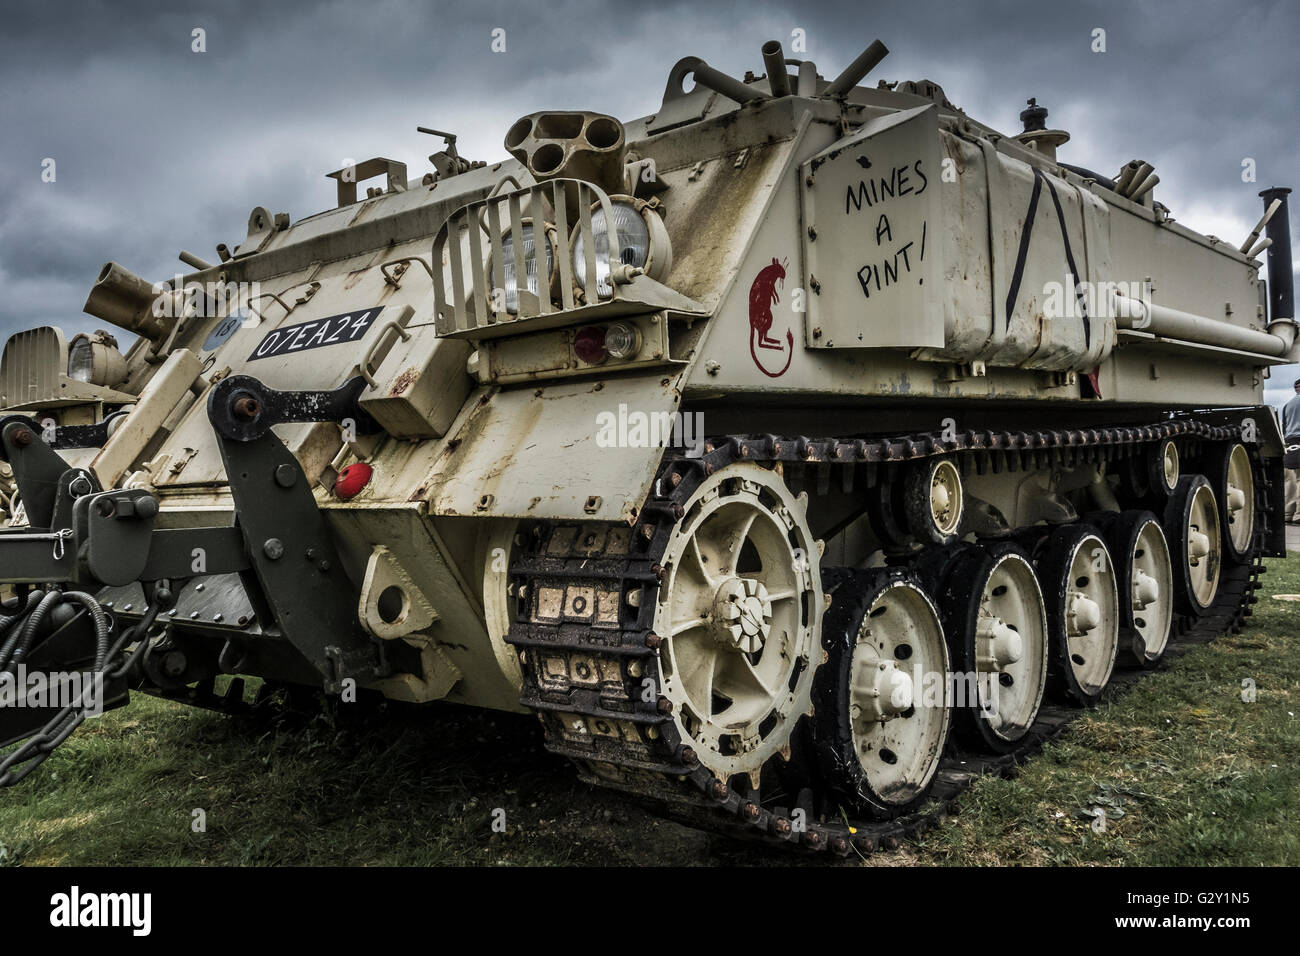 Armoured personnel carrier (APC)  at Duxford air base - Stock Image